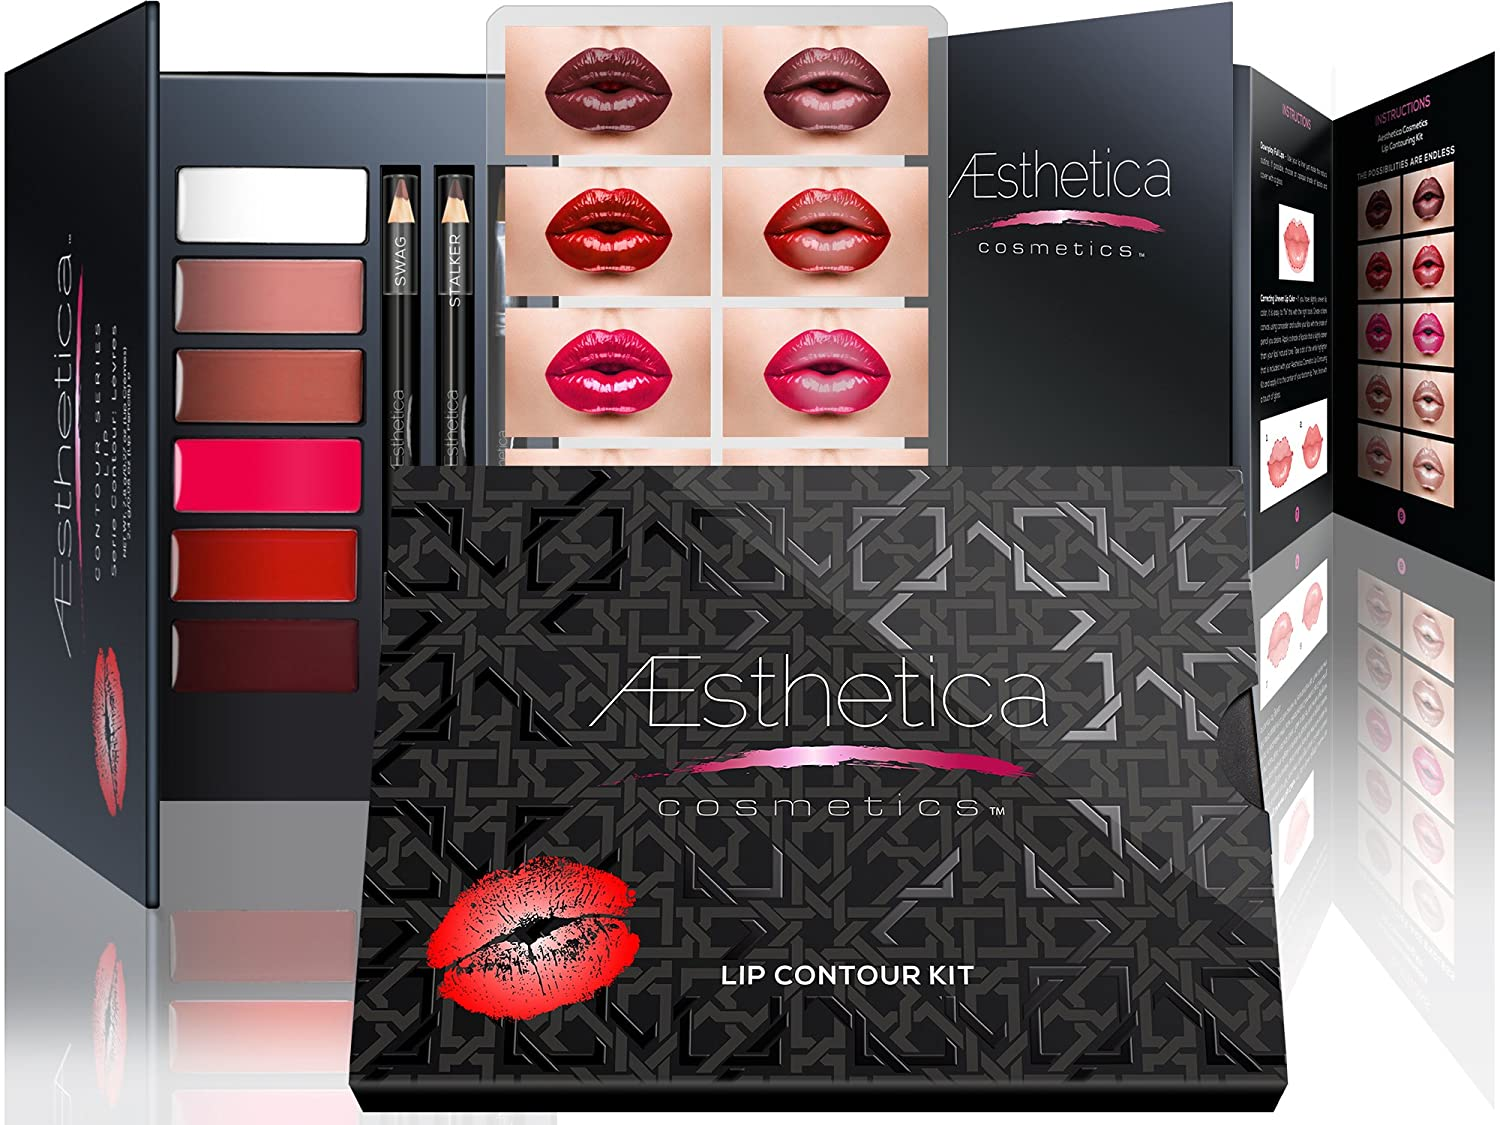 Aesthetica Cosmetics Lip Contour Kit - Cream Contouring and Highlighting Lipstick Palette Set - Includes Six Lip Crèmes, Four Lip Liners, Lip Brush and Step-by-Step Instructions - Vegan & Cruelty Free